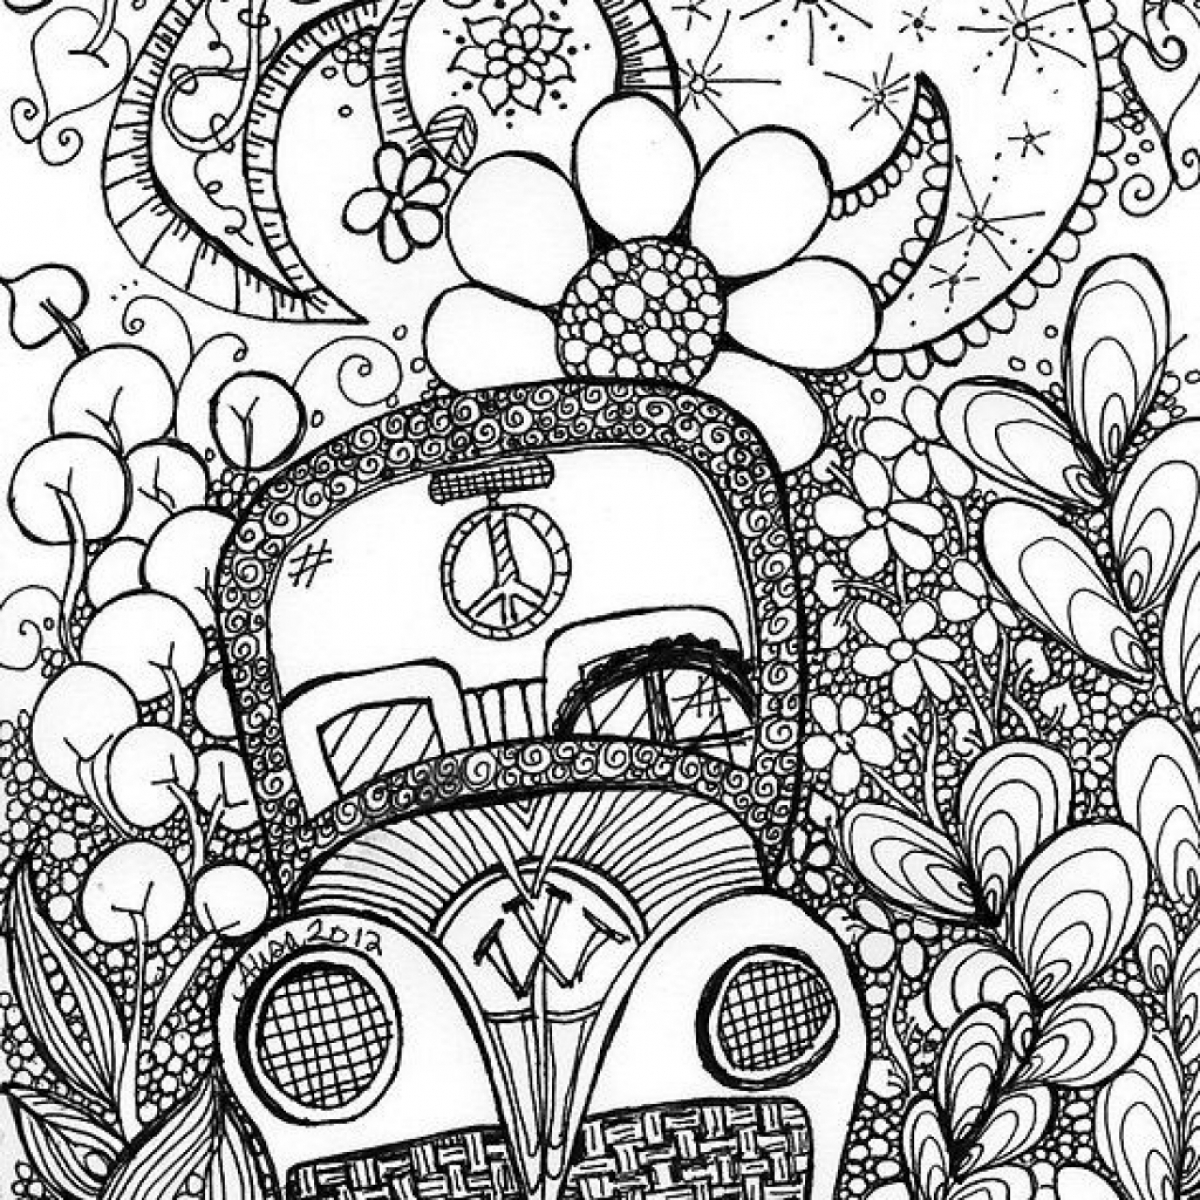 free printable trippy coloring pages get this free trippy coloring pages to print for adults coloring free trippy printable pages